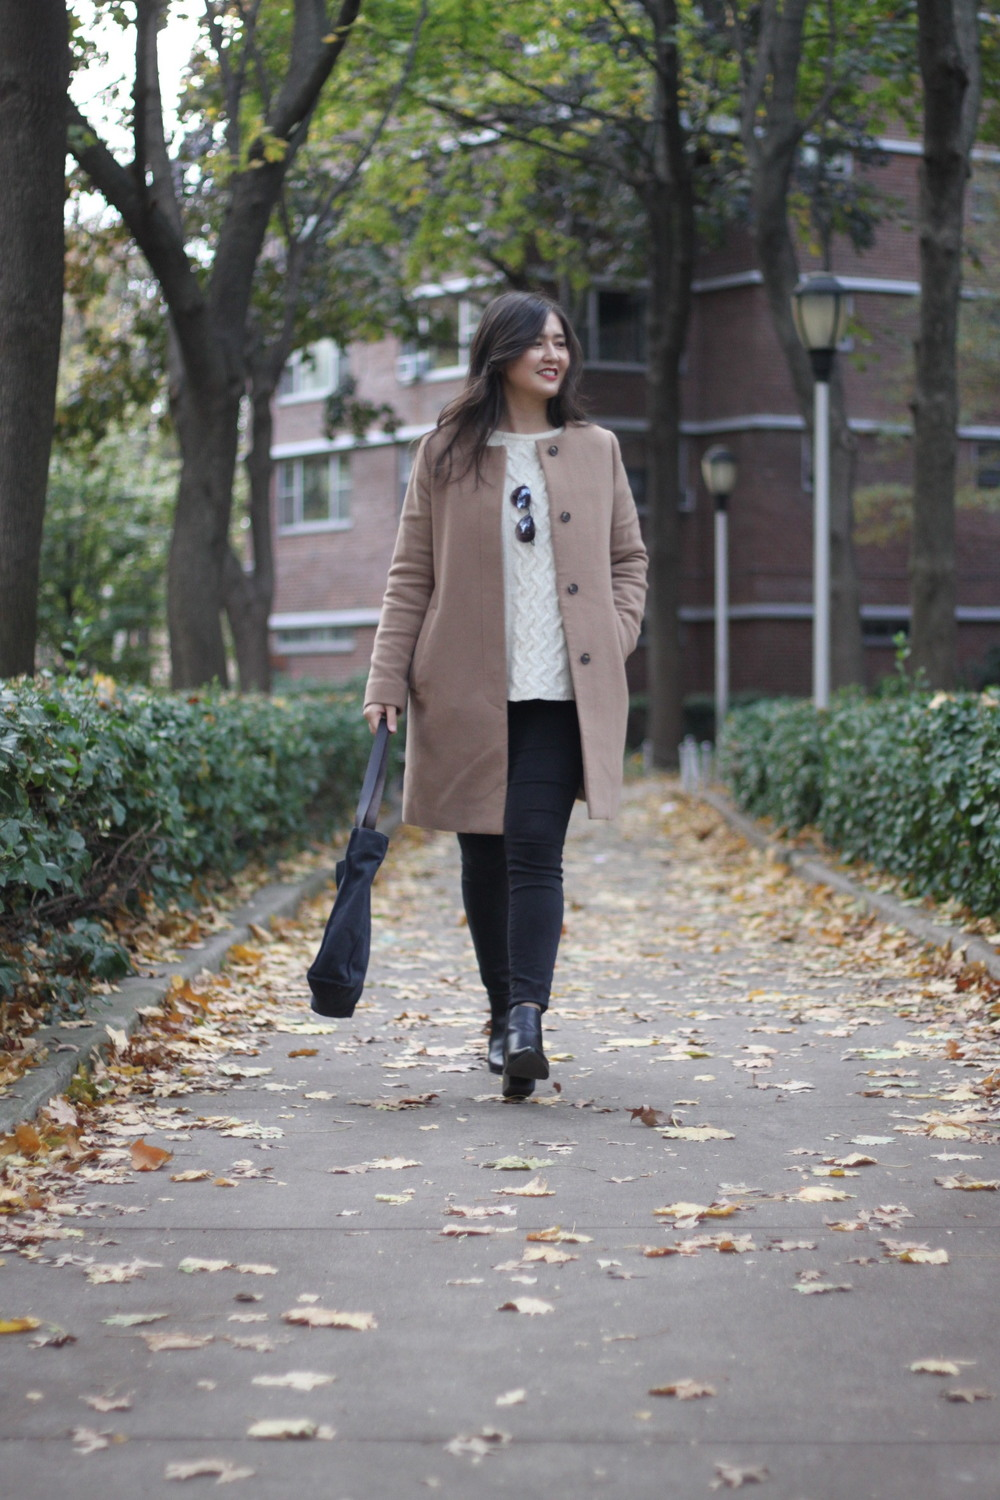 Coat:  Uniqlo . Sweater: Zara (similar  here ). Jeans: American Eagle. Boots:  ASOS .